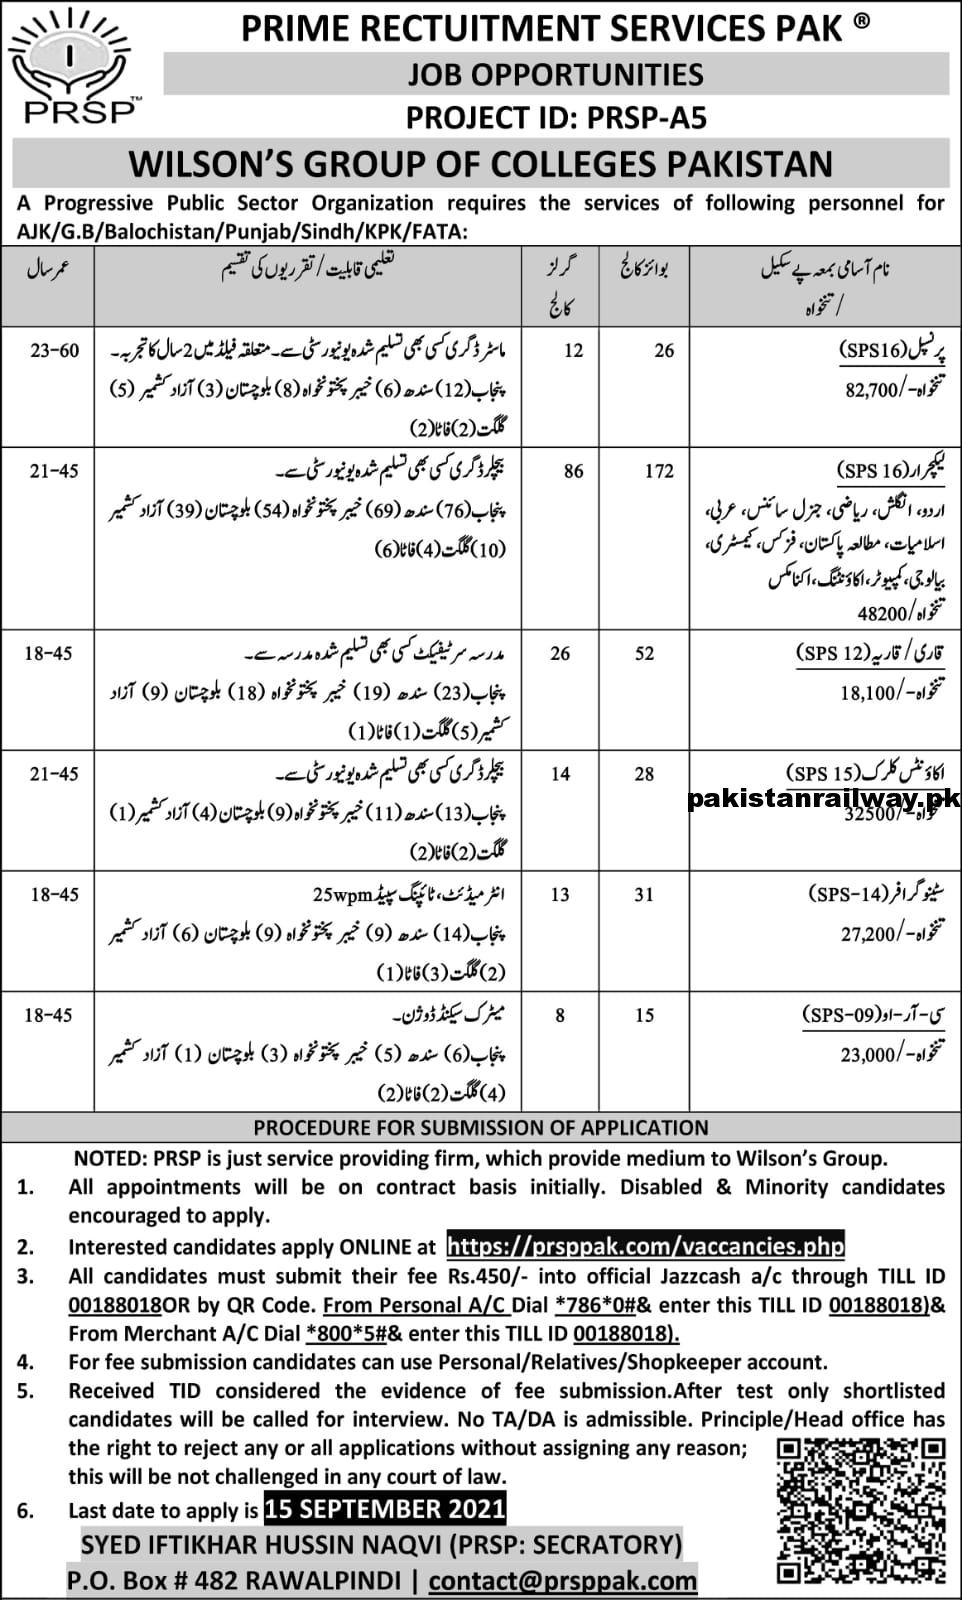 Latest Govt jobs in Pakistan Today At Wilson Group of Colleges Via Prime Recruitment Services Pakistan PRSP